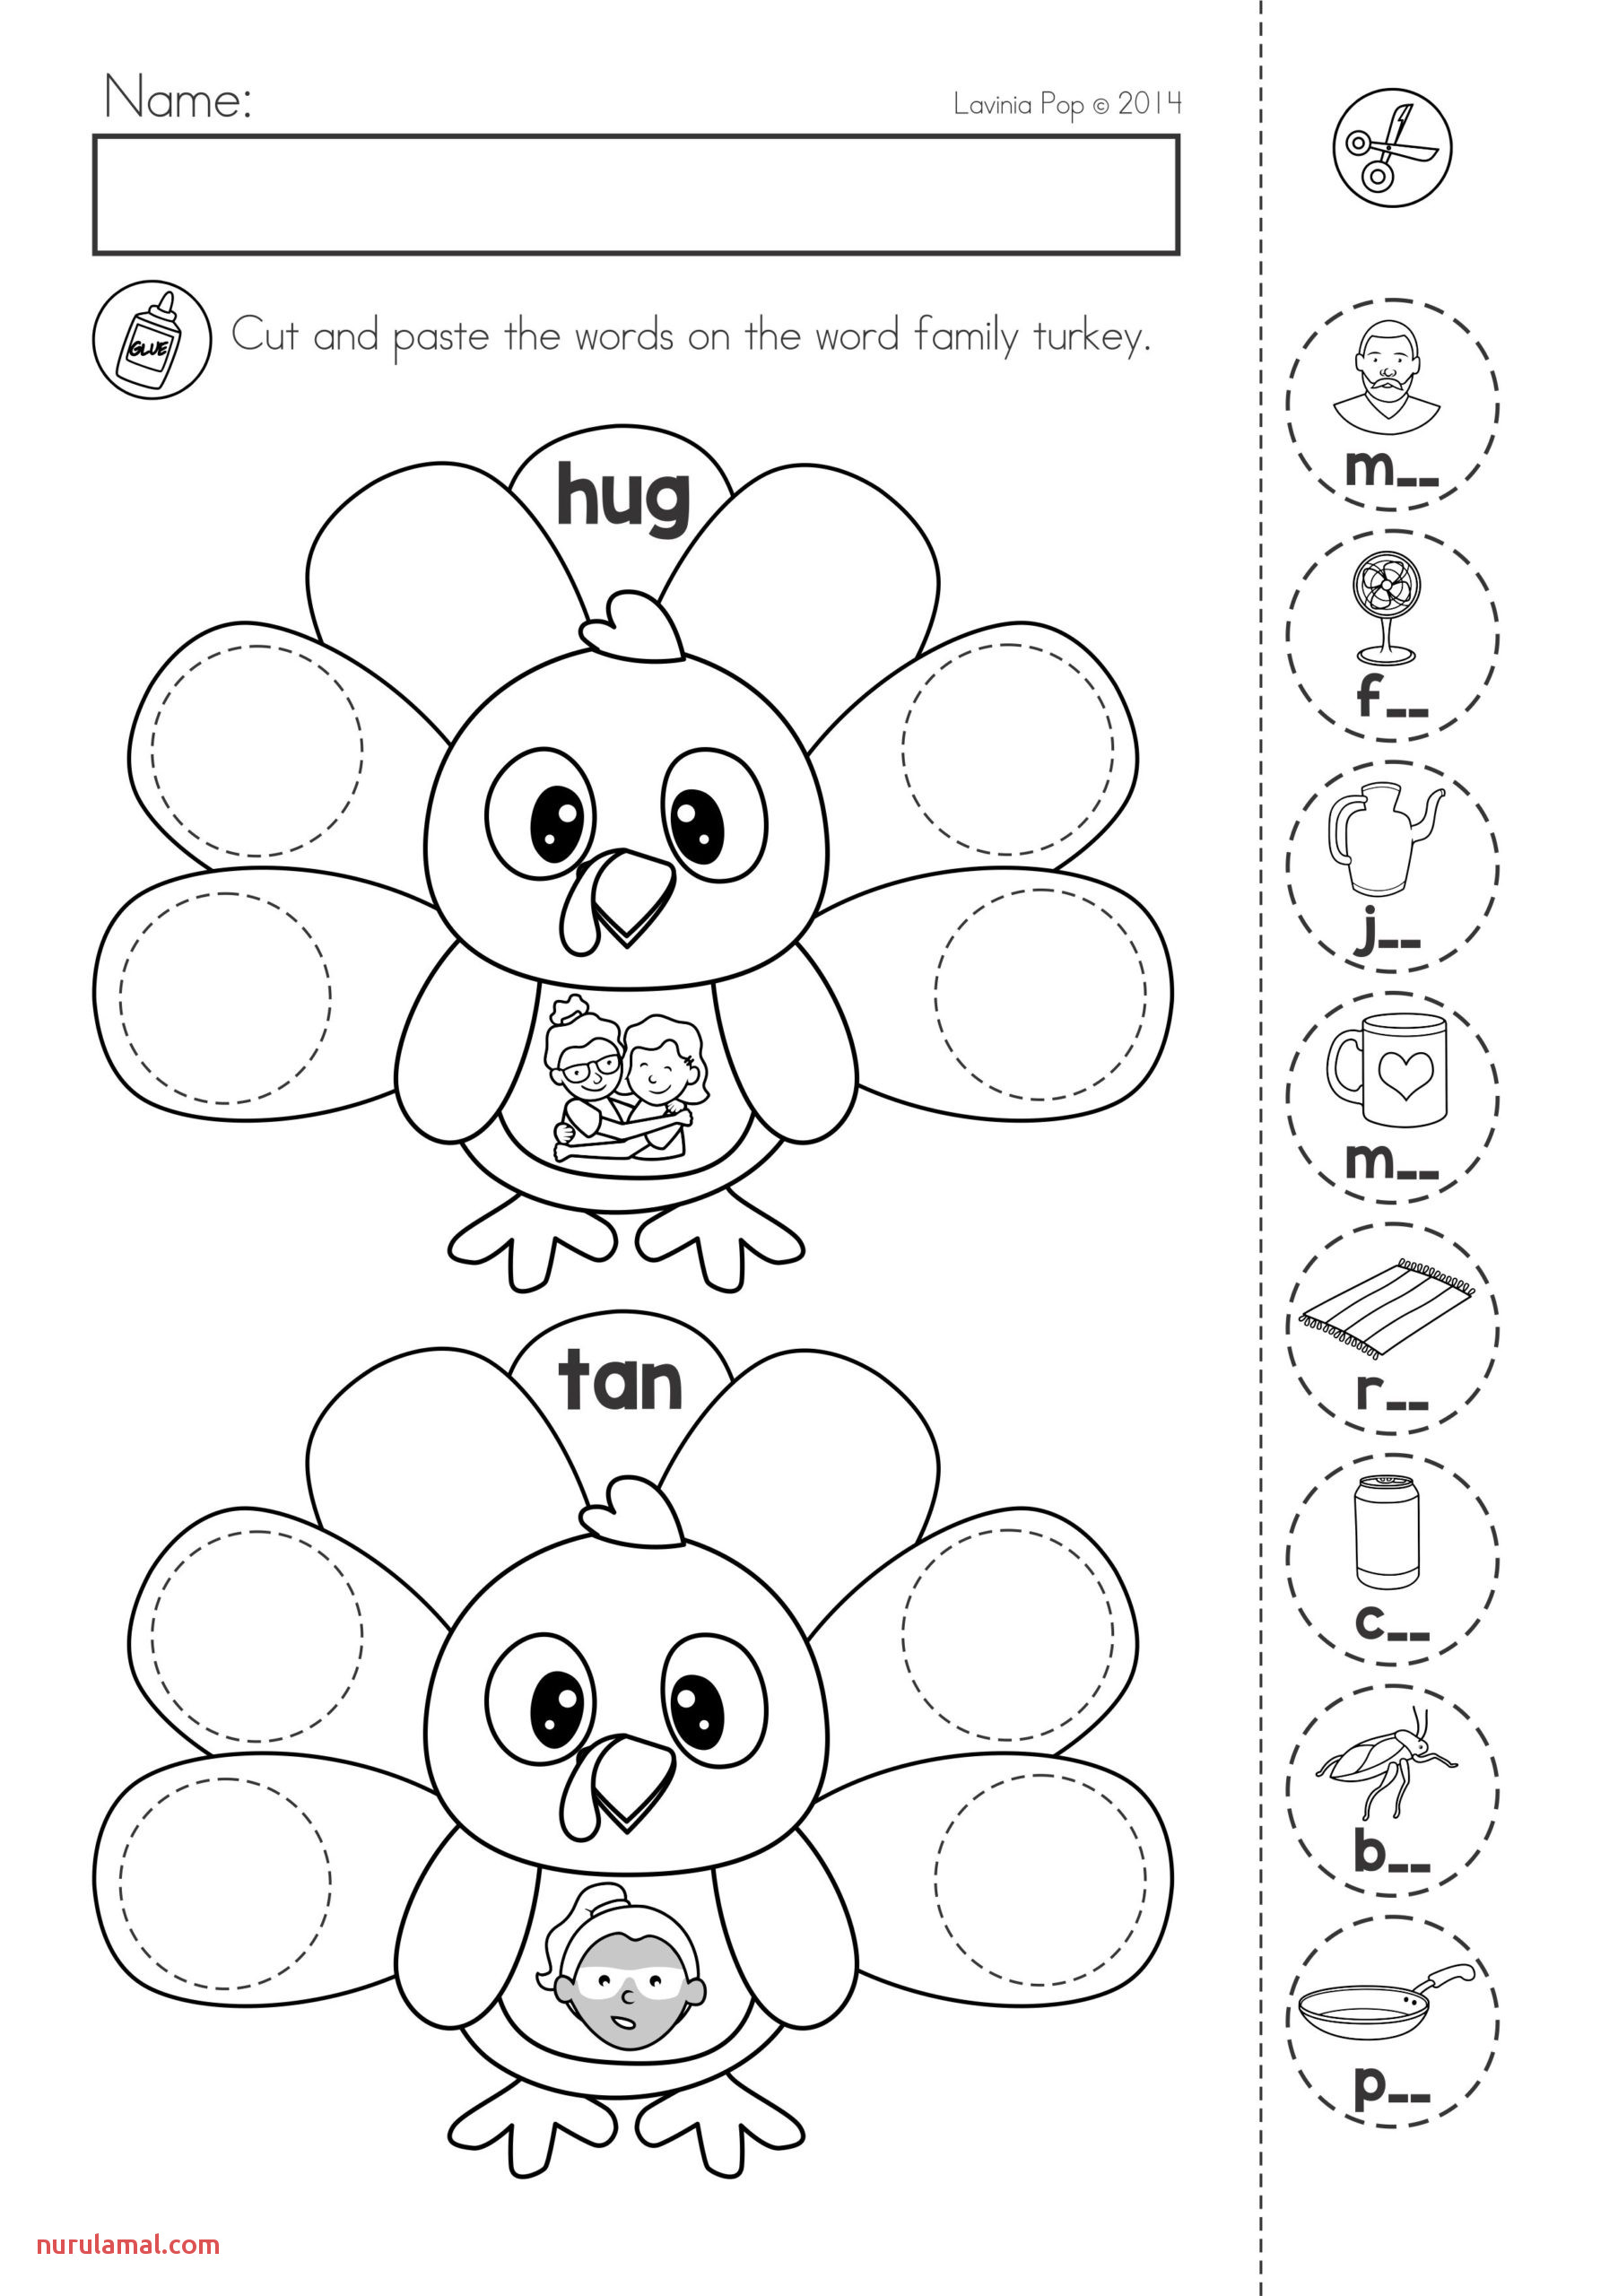 math games worksheets ks3 primary free printable activity for homework 1st graders any the number system 8th grade six mathematics reading 2nd money fractions on line worksheet year scaled